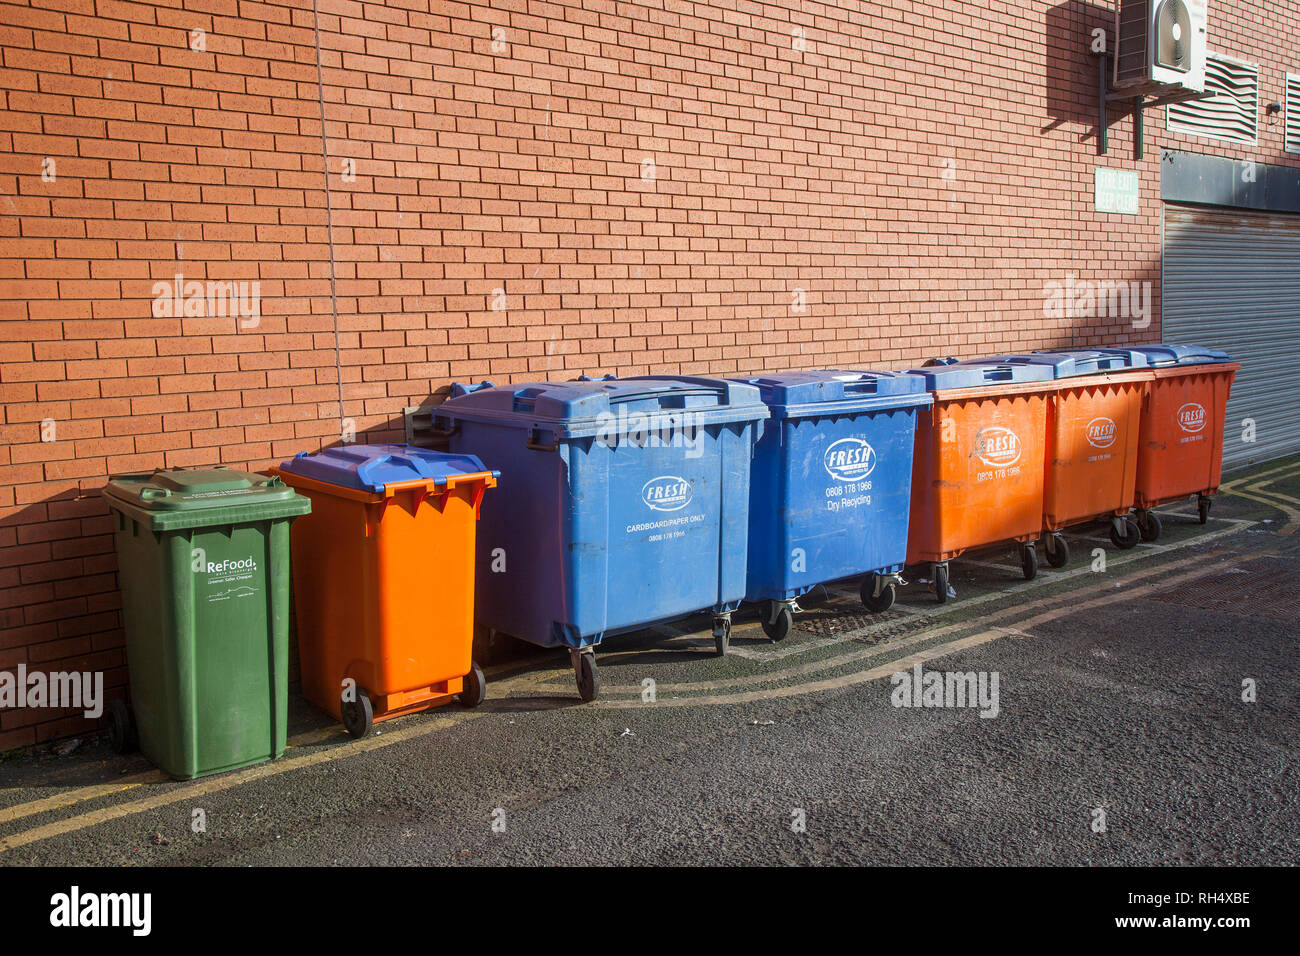 Dumpster, Wheelie Bins, Waste collection service, Blackpool, UK - Stock Image